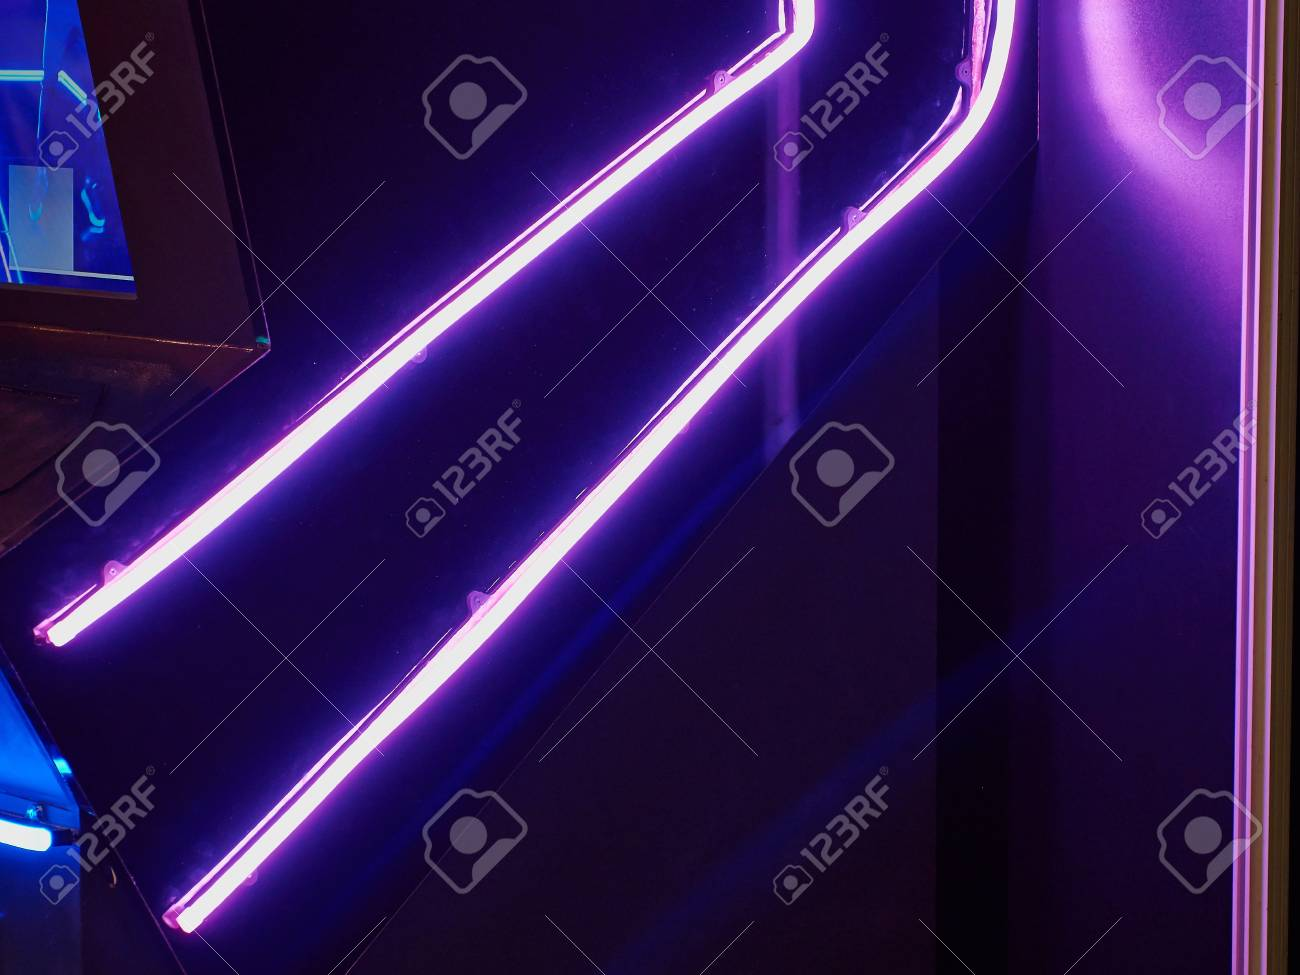 Neon Lights Purple Violet UV Over Black Abstract Background Stock 1300x975